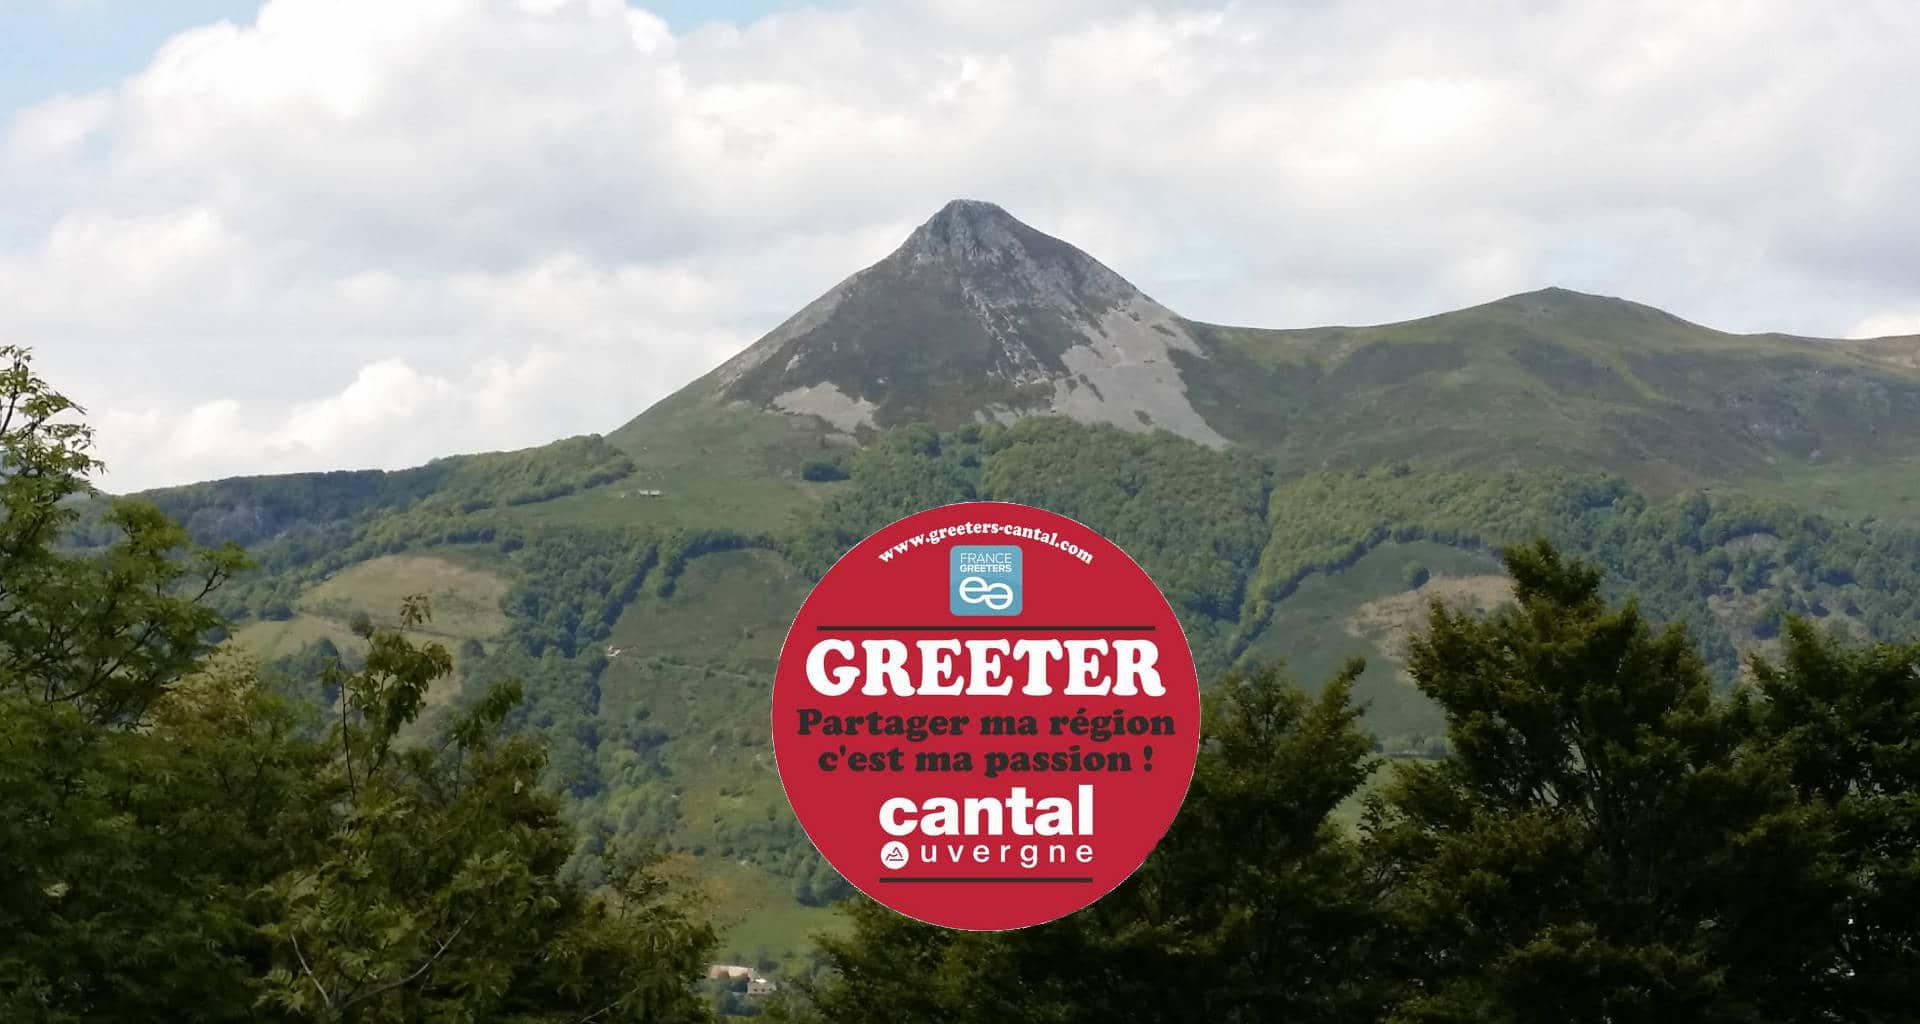 Les Greeters du Cantal